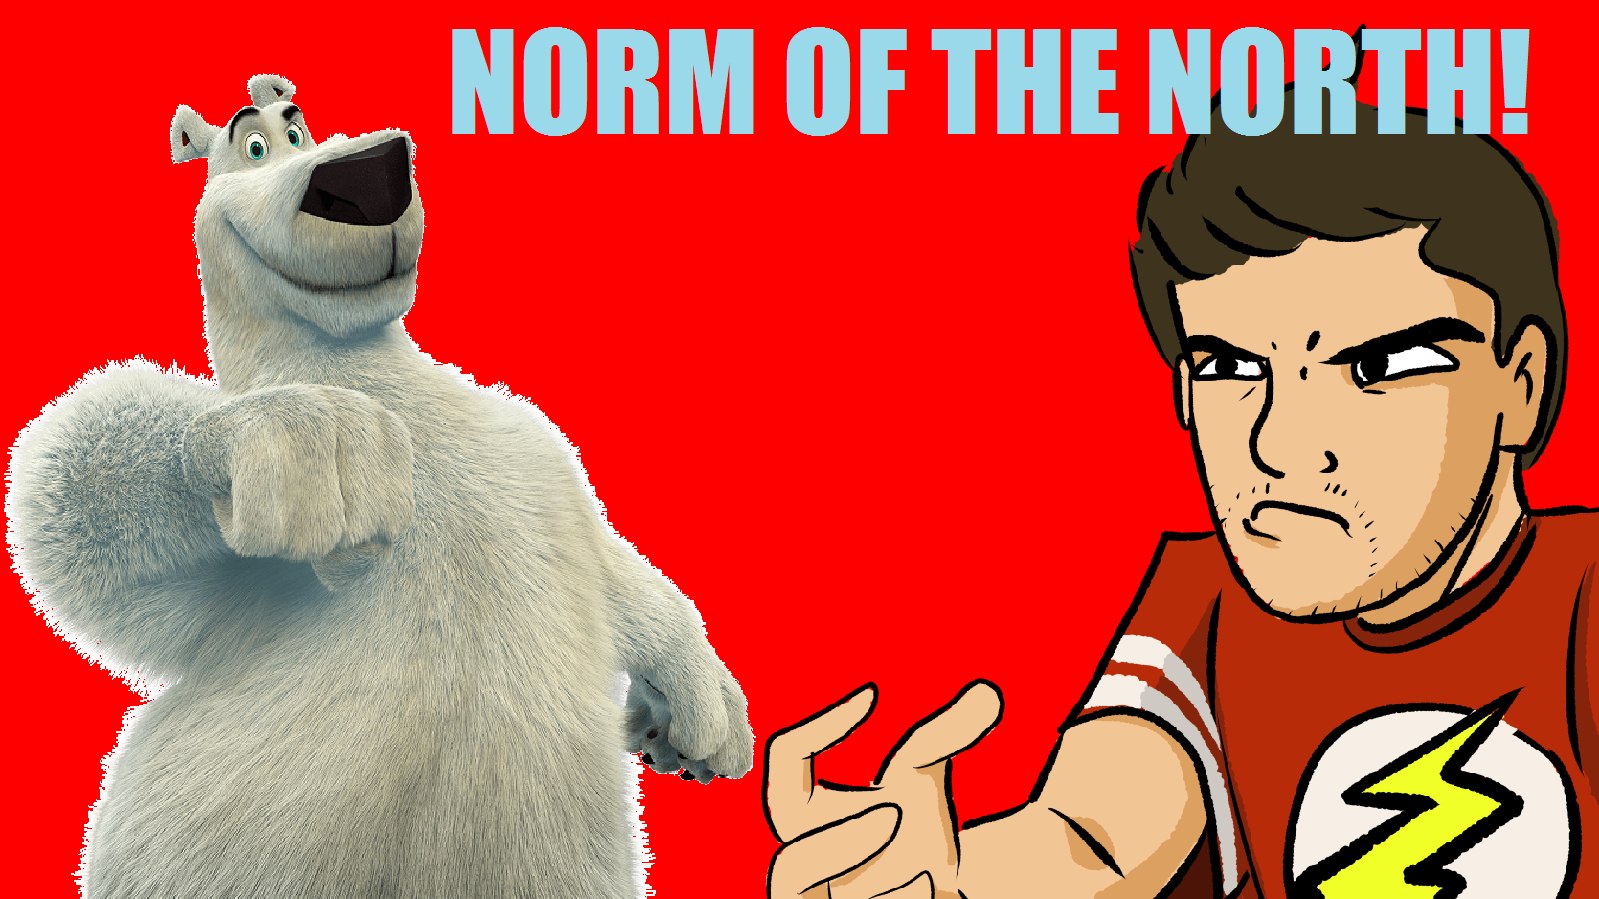 Cynical Norm